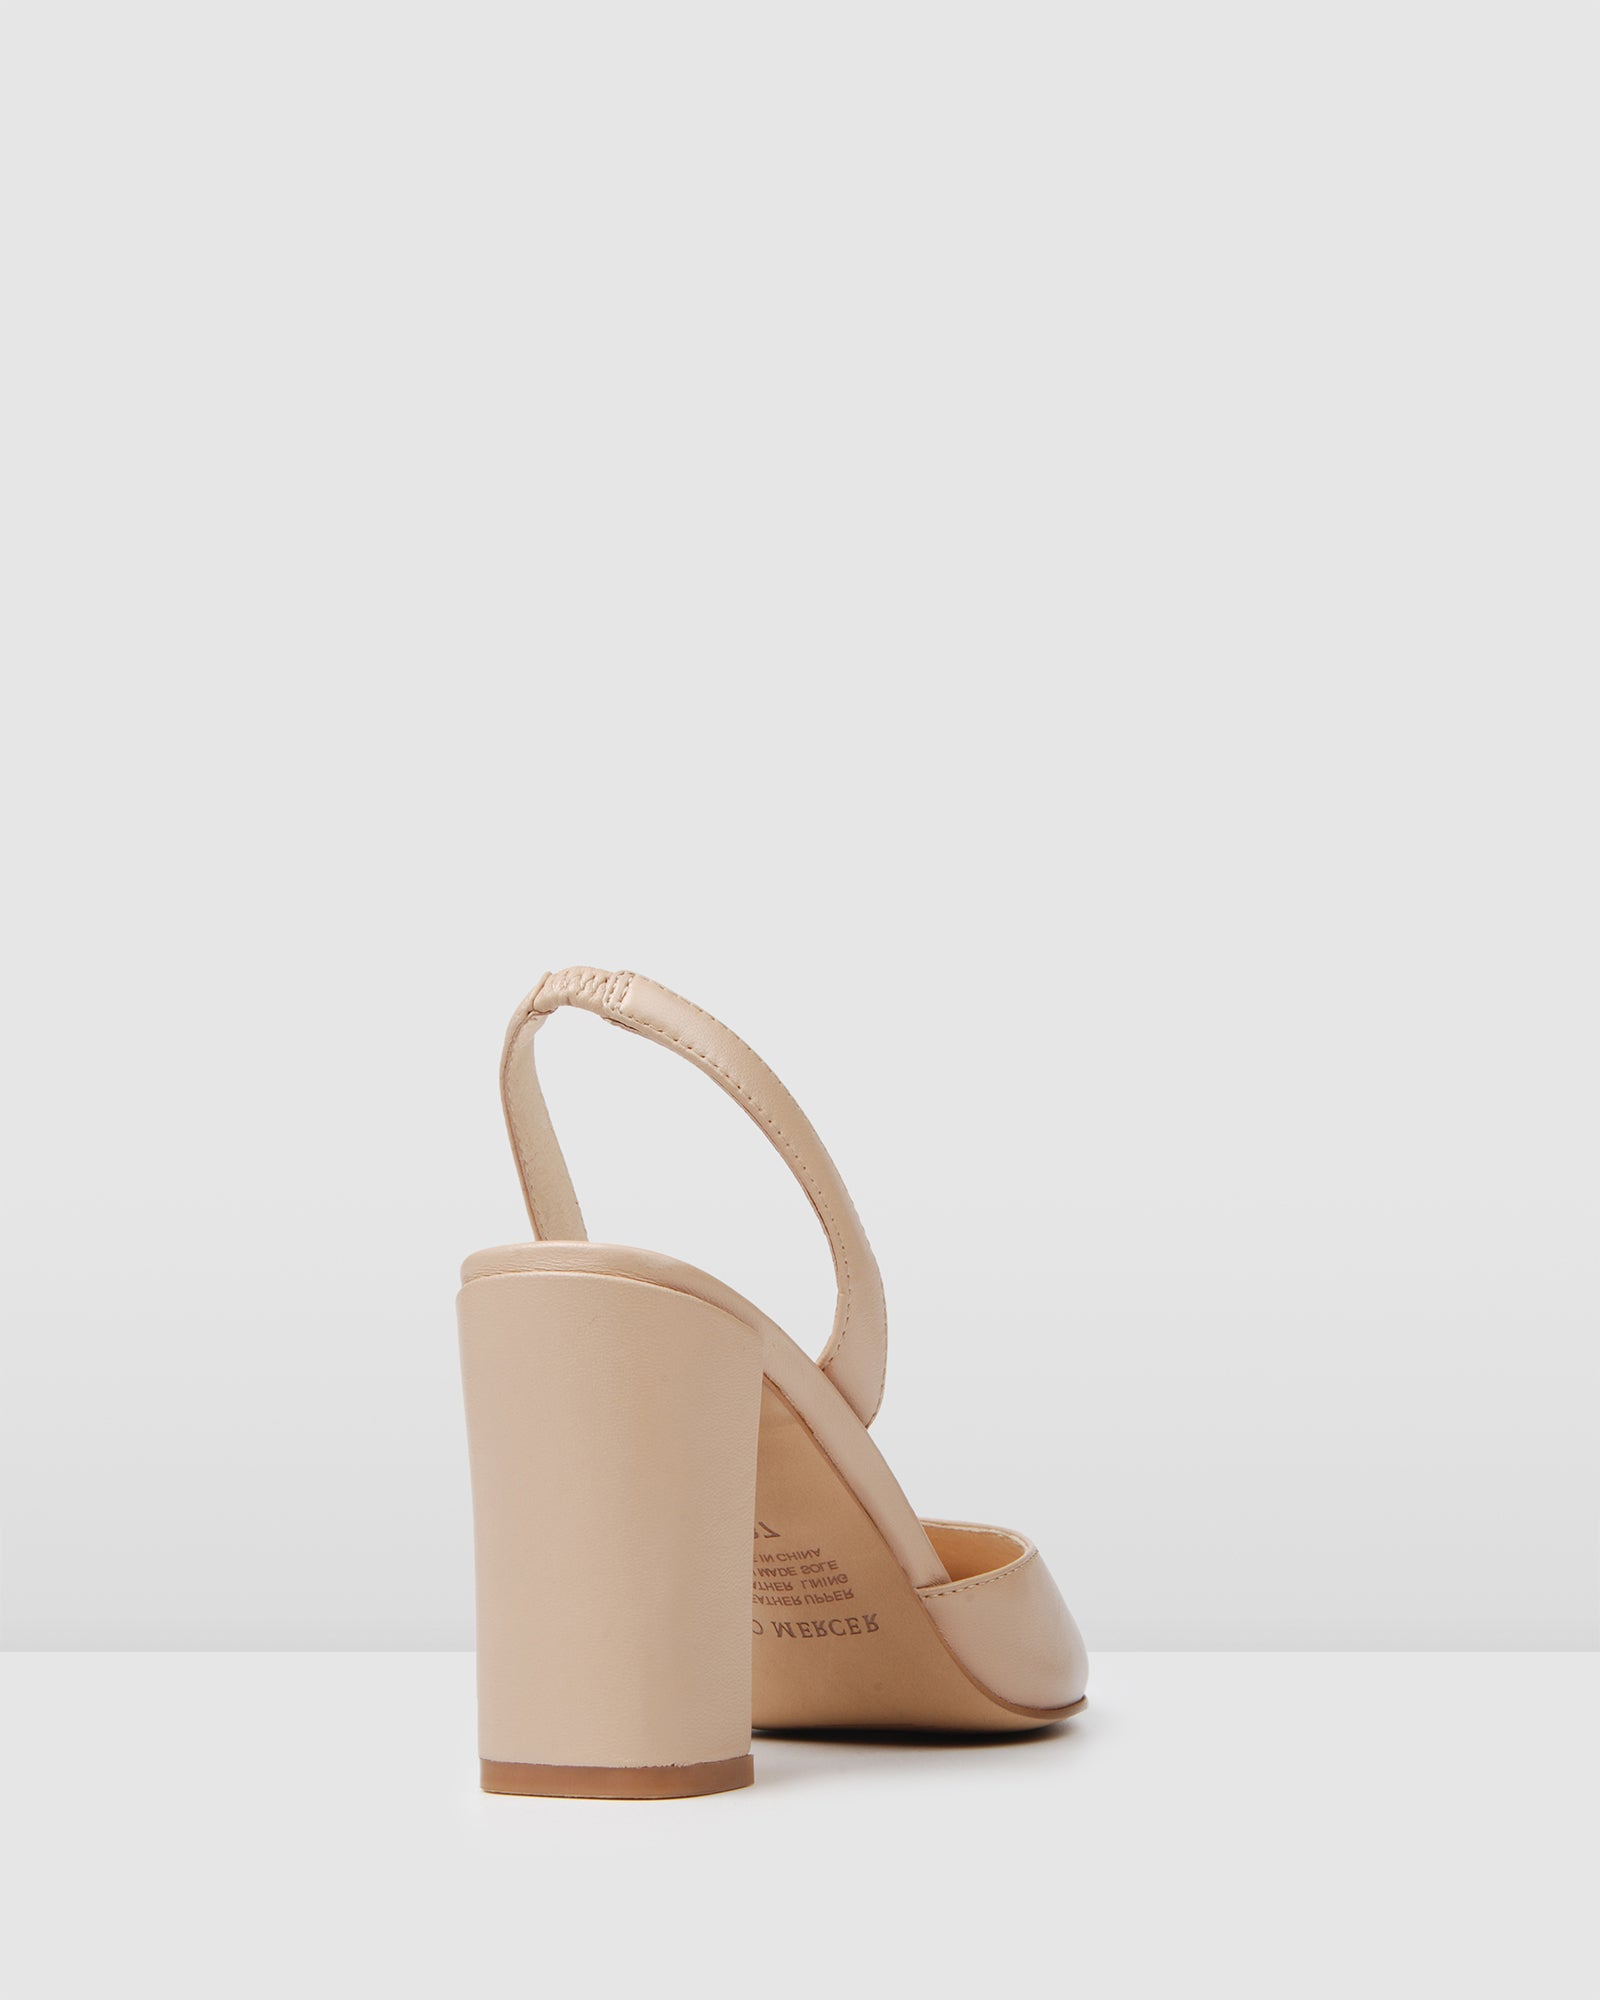 GENEVA HIGH HEELS BEIGE LEATHER